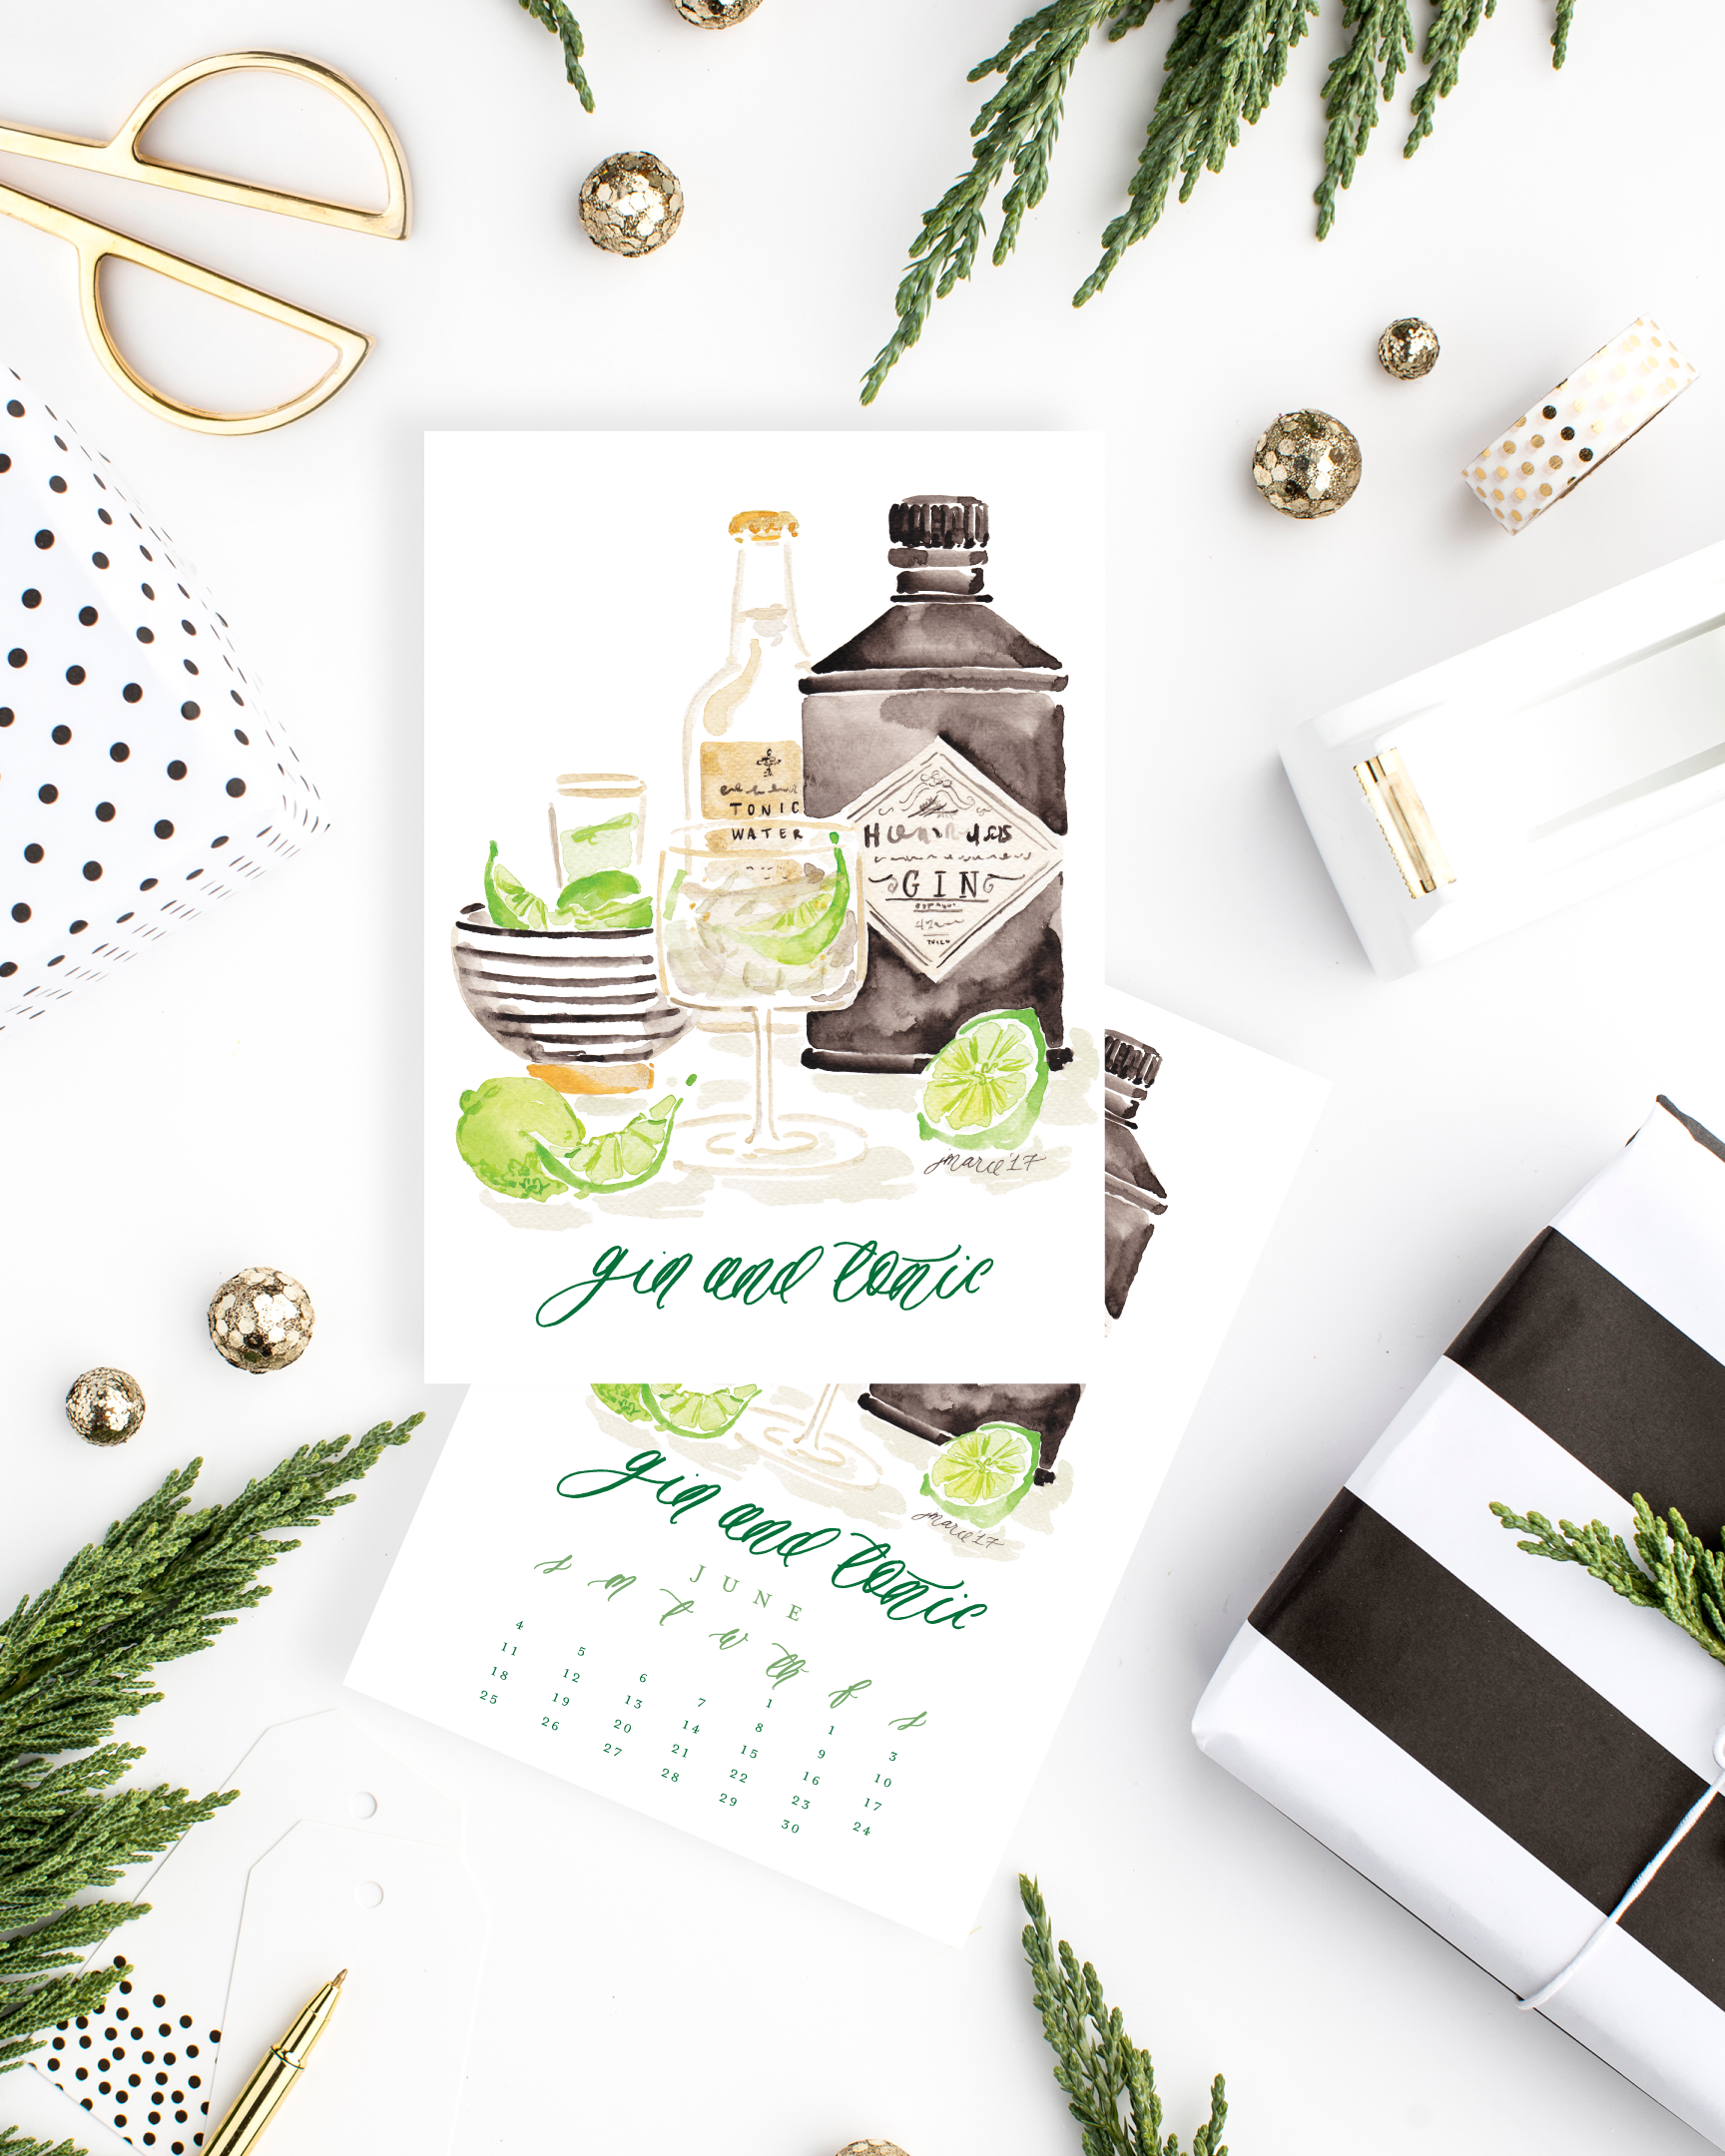 2017 Cocktail Calendar by Simply Jessica Marie with Watercolor Cocktail Illustrations | SC Stockshop